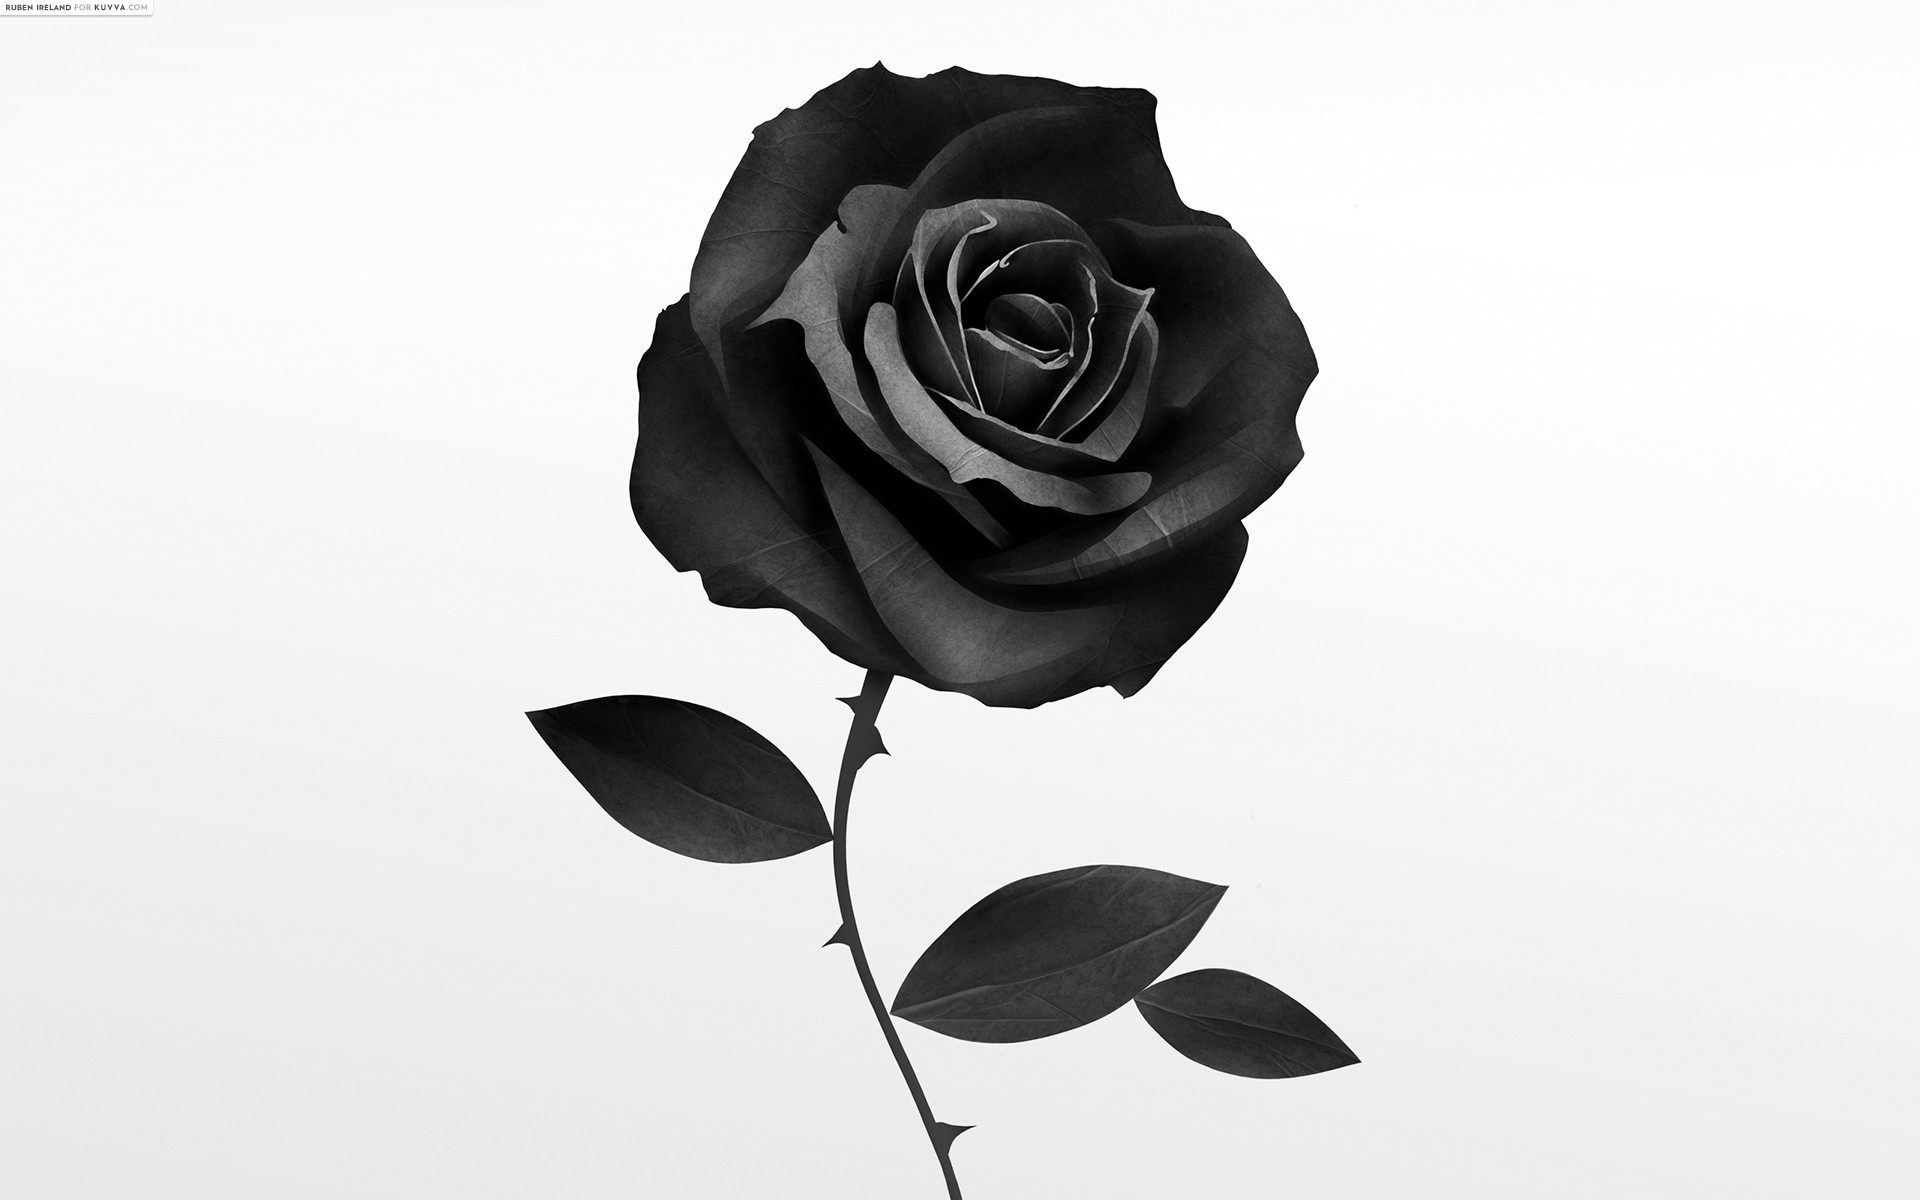 Wallpapers of Black Rose HD Quality